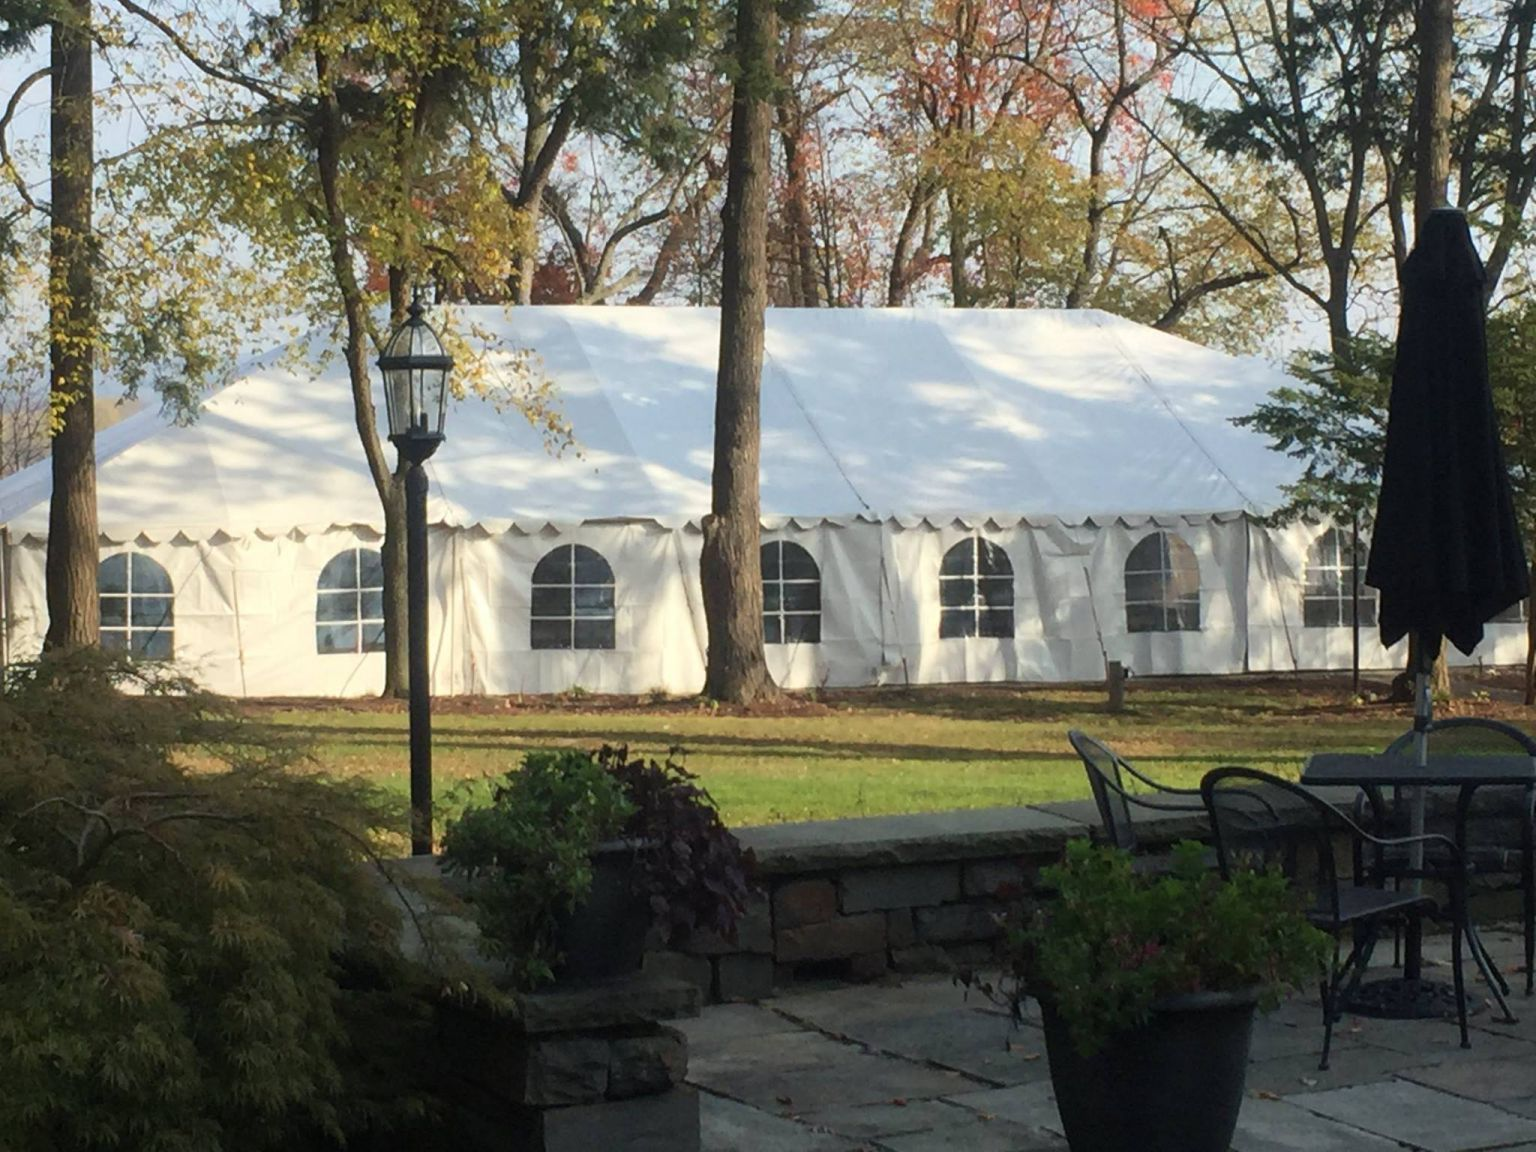 large tent with sides